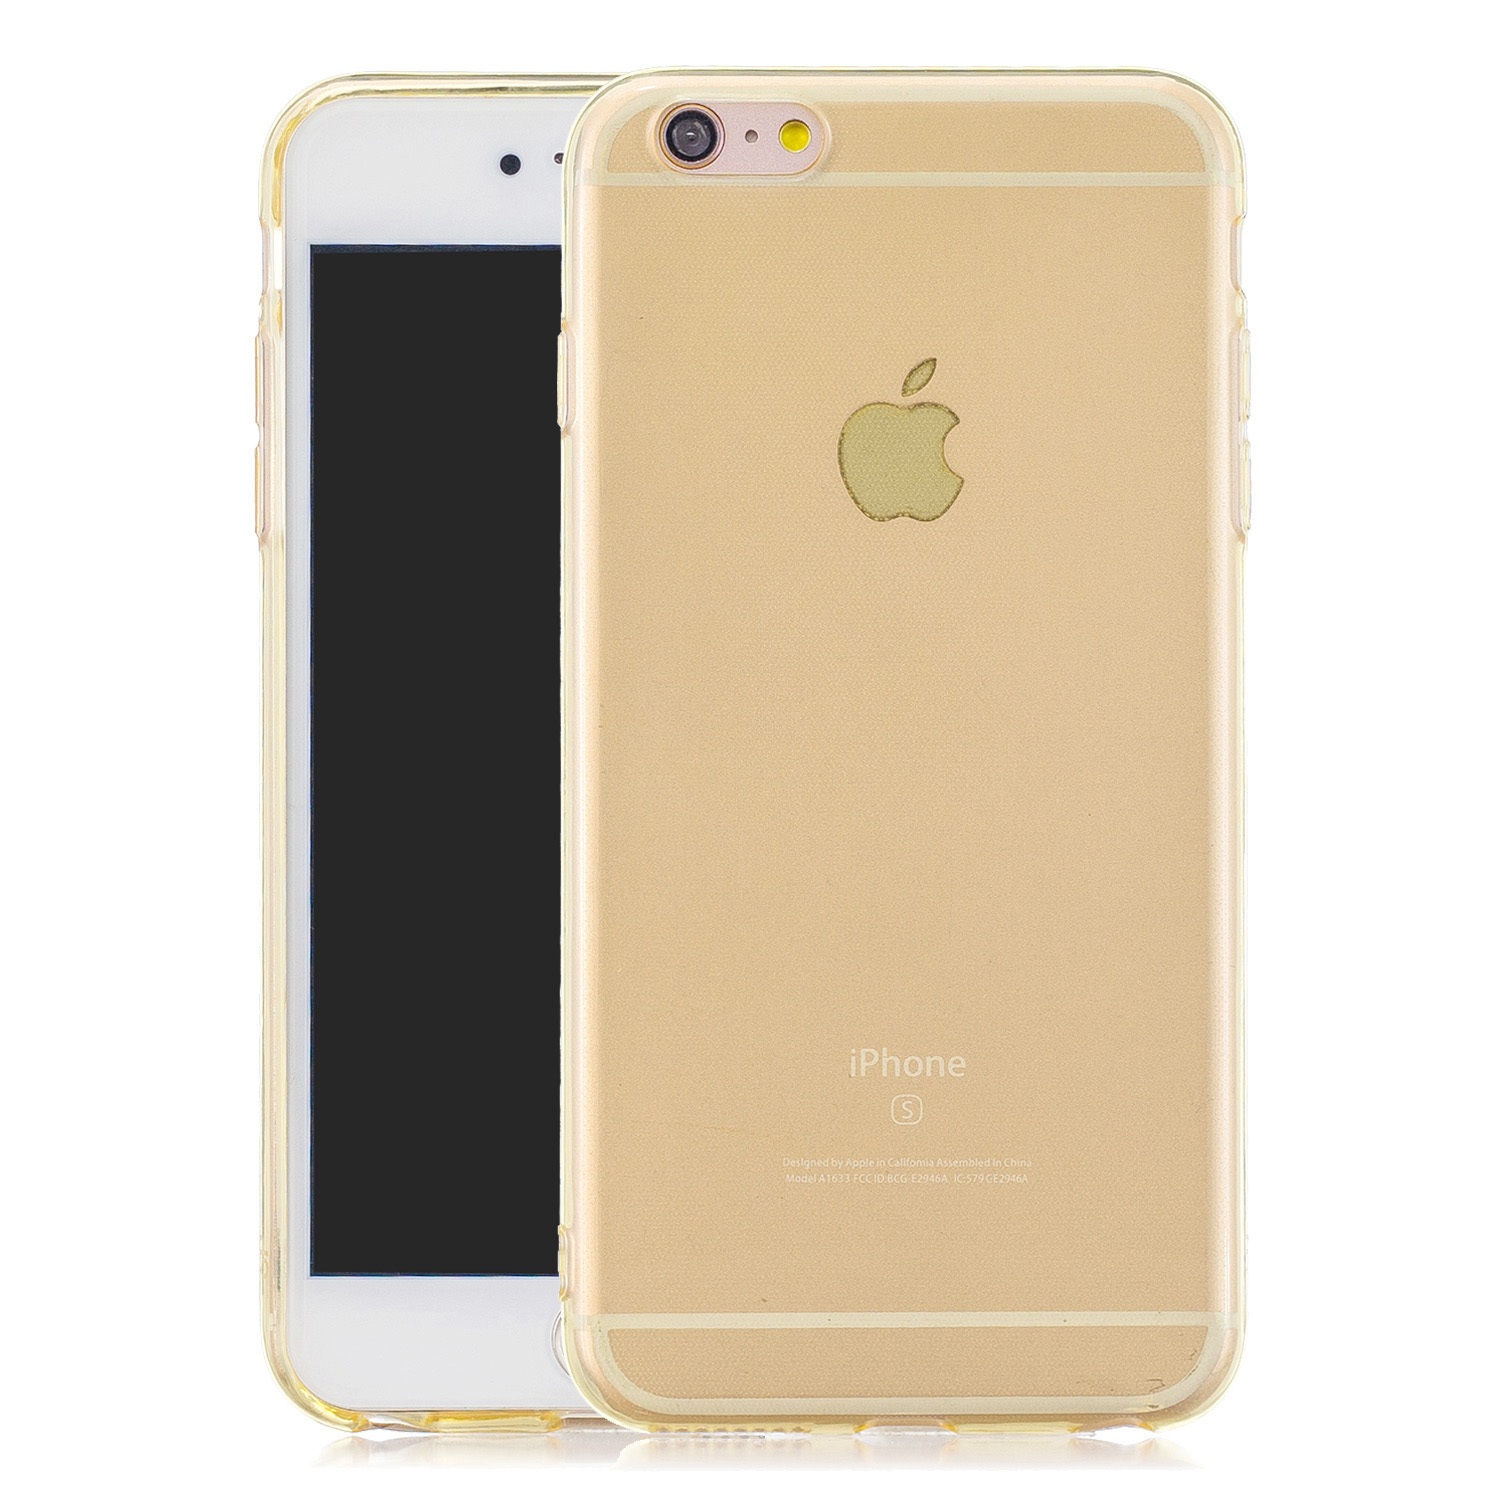 for iPhone 6/6S / 6 Plus/6S Plus / 7/8 / 7 Plus/8 Plus Clear Colorful TPU Back Cover Cellphone Case Shell Yellow